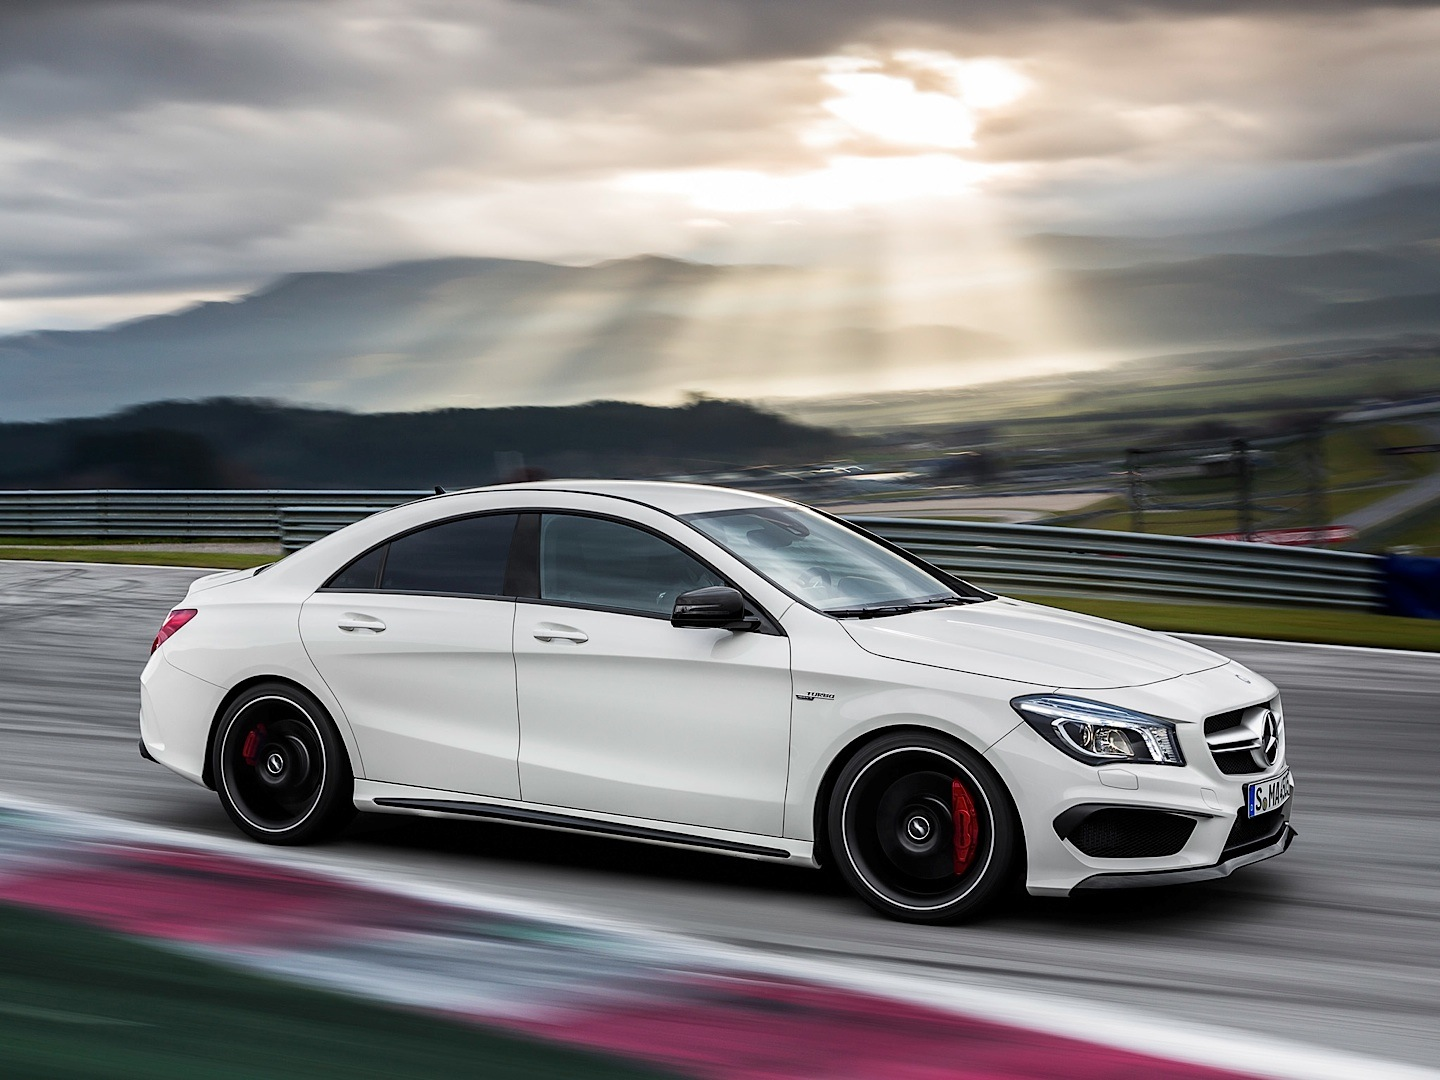 Mercedes Cla45 Amg Mercedes Benz Cla 45 Amg Gets Epa Rated Autoevolution